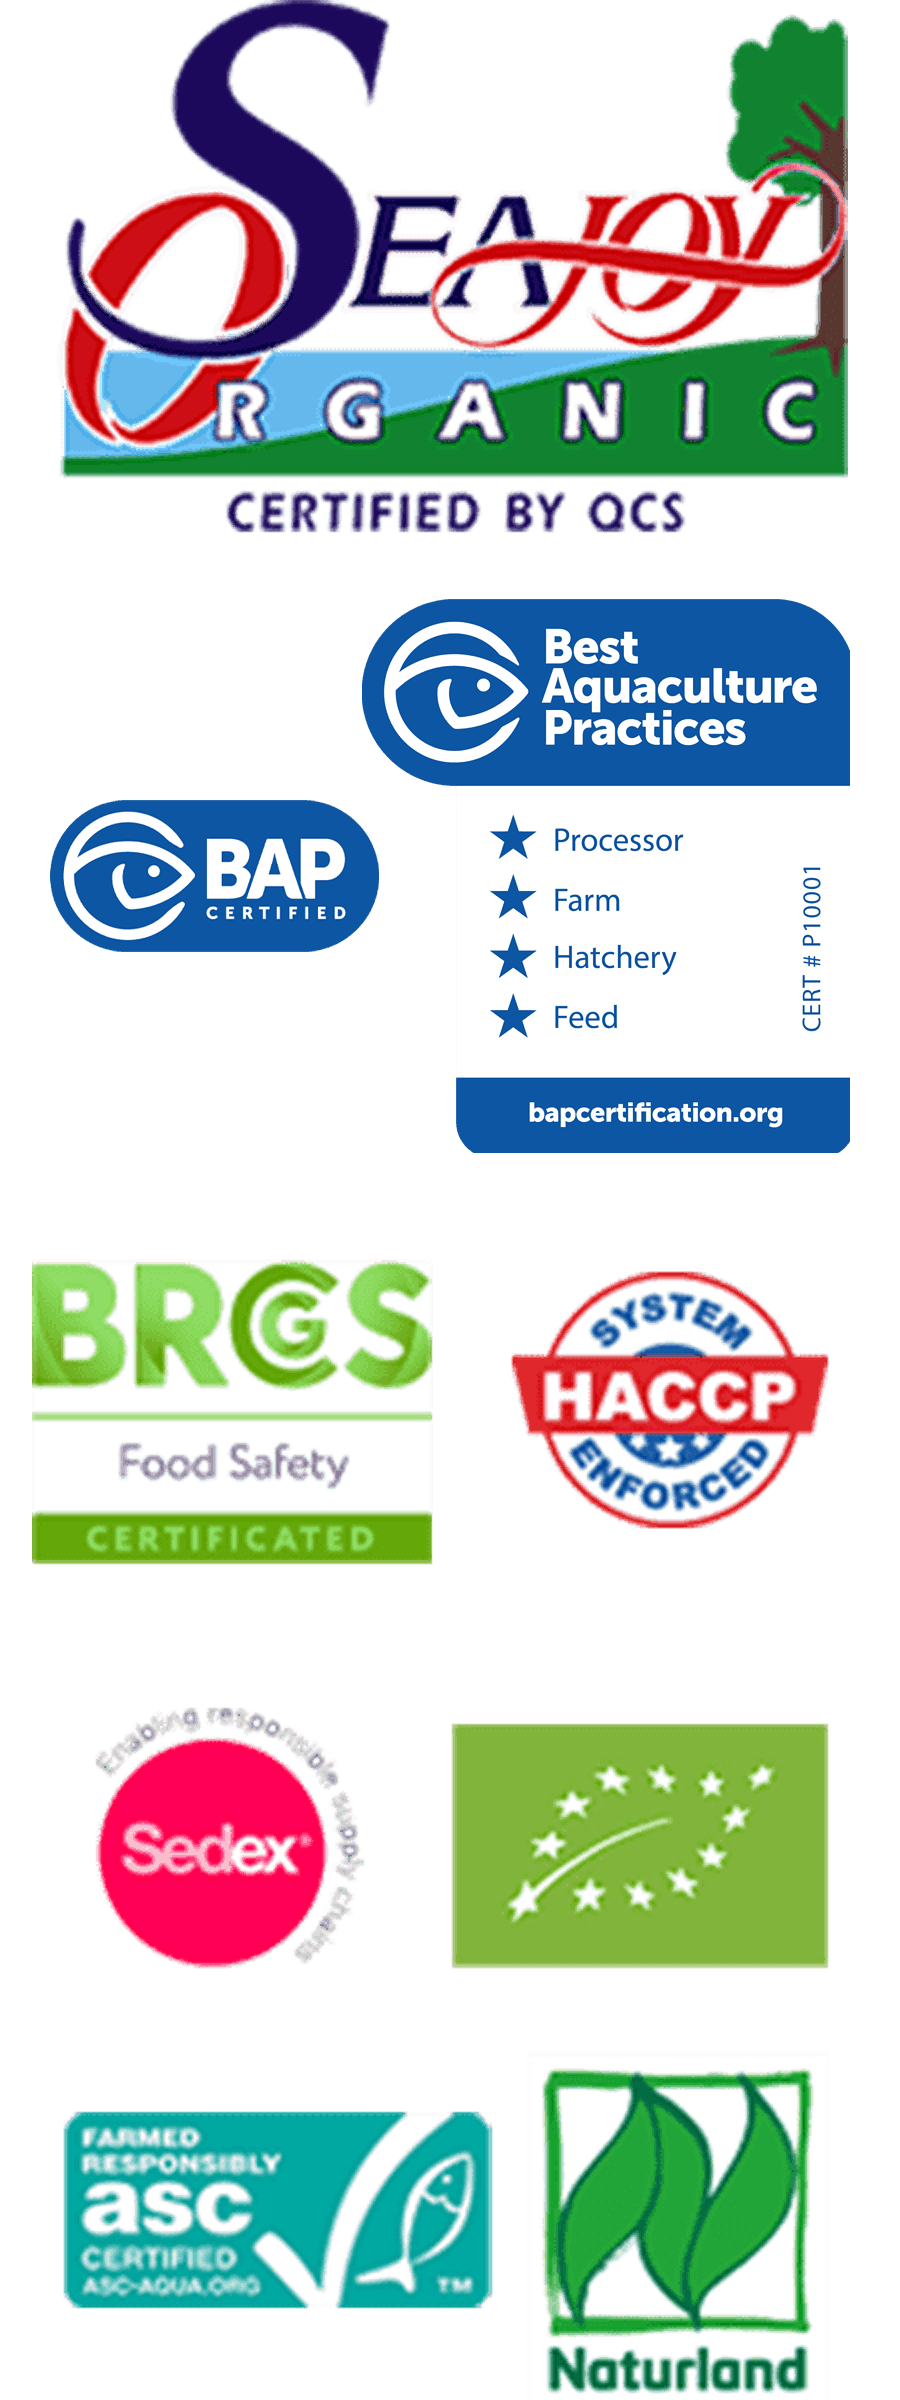 Seajoy Certifications